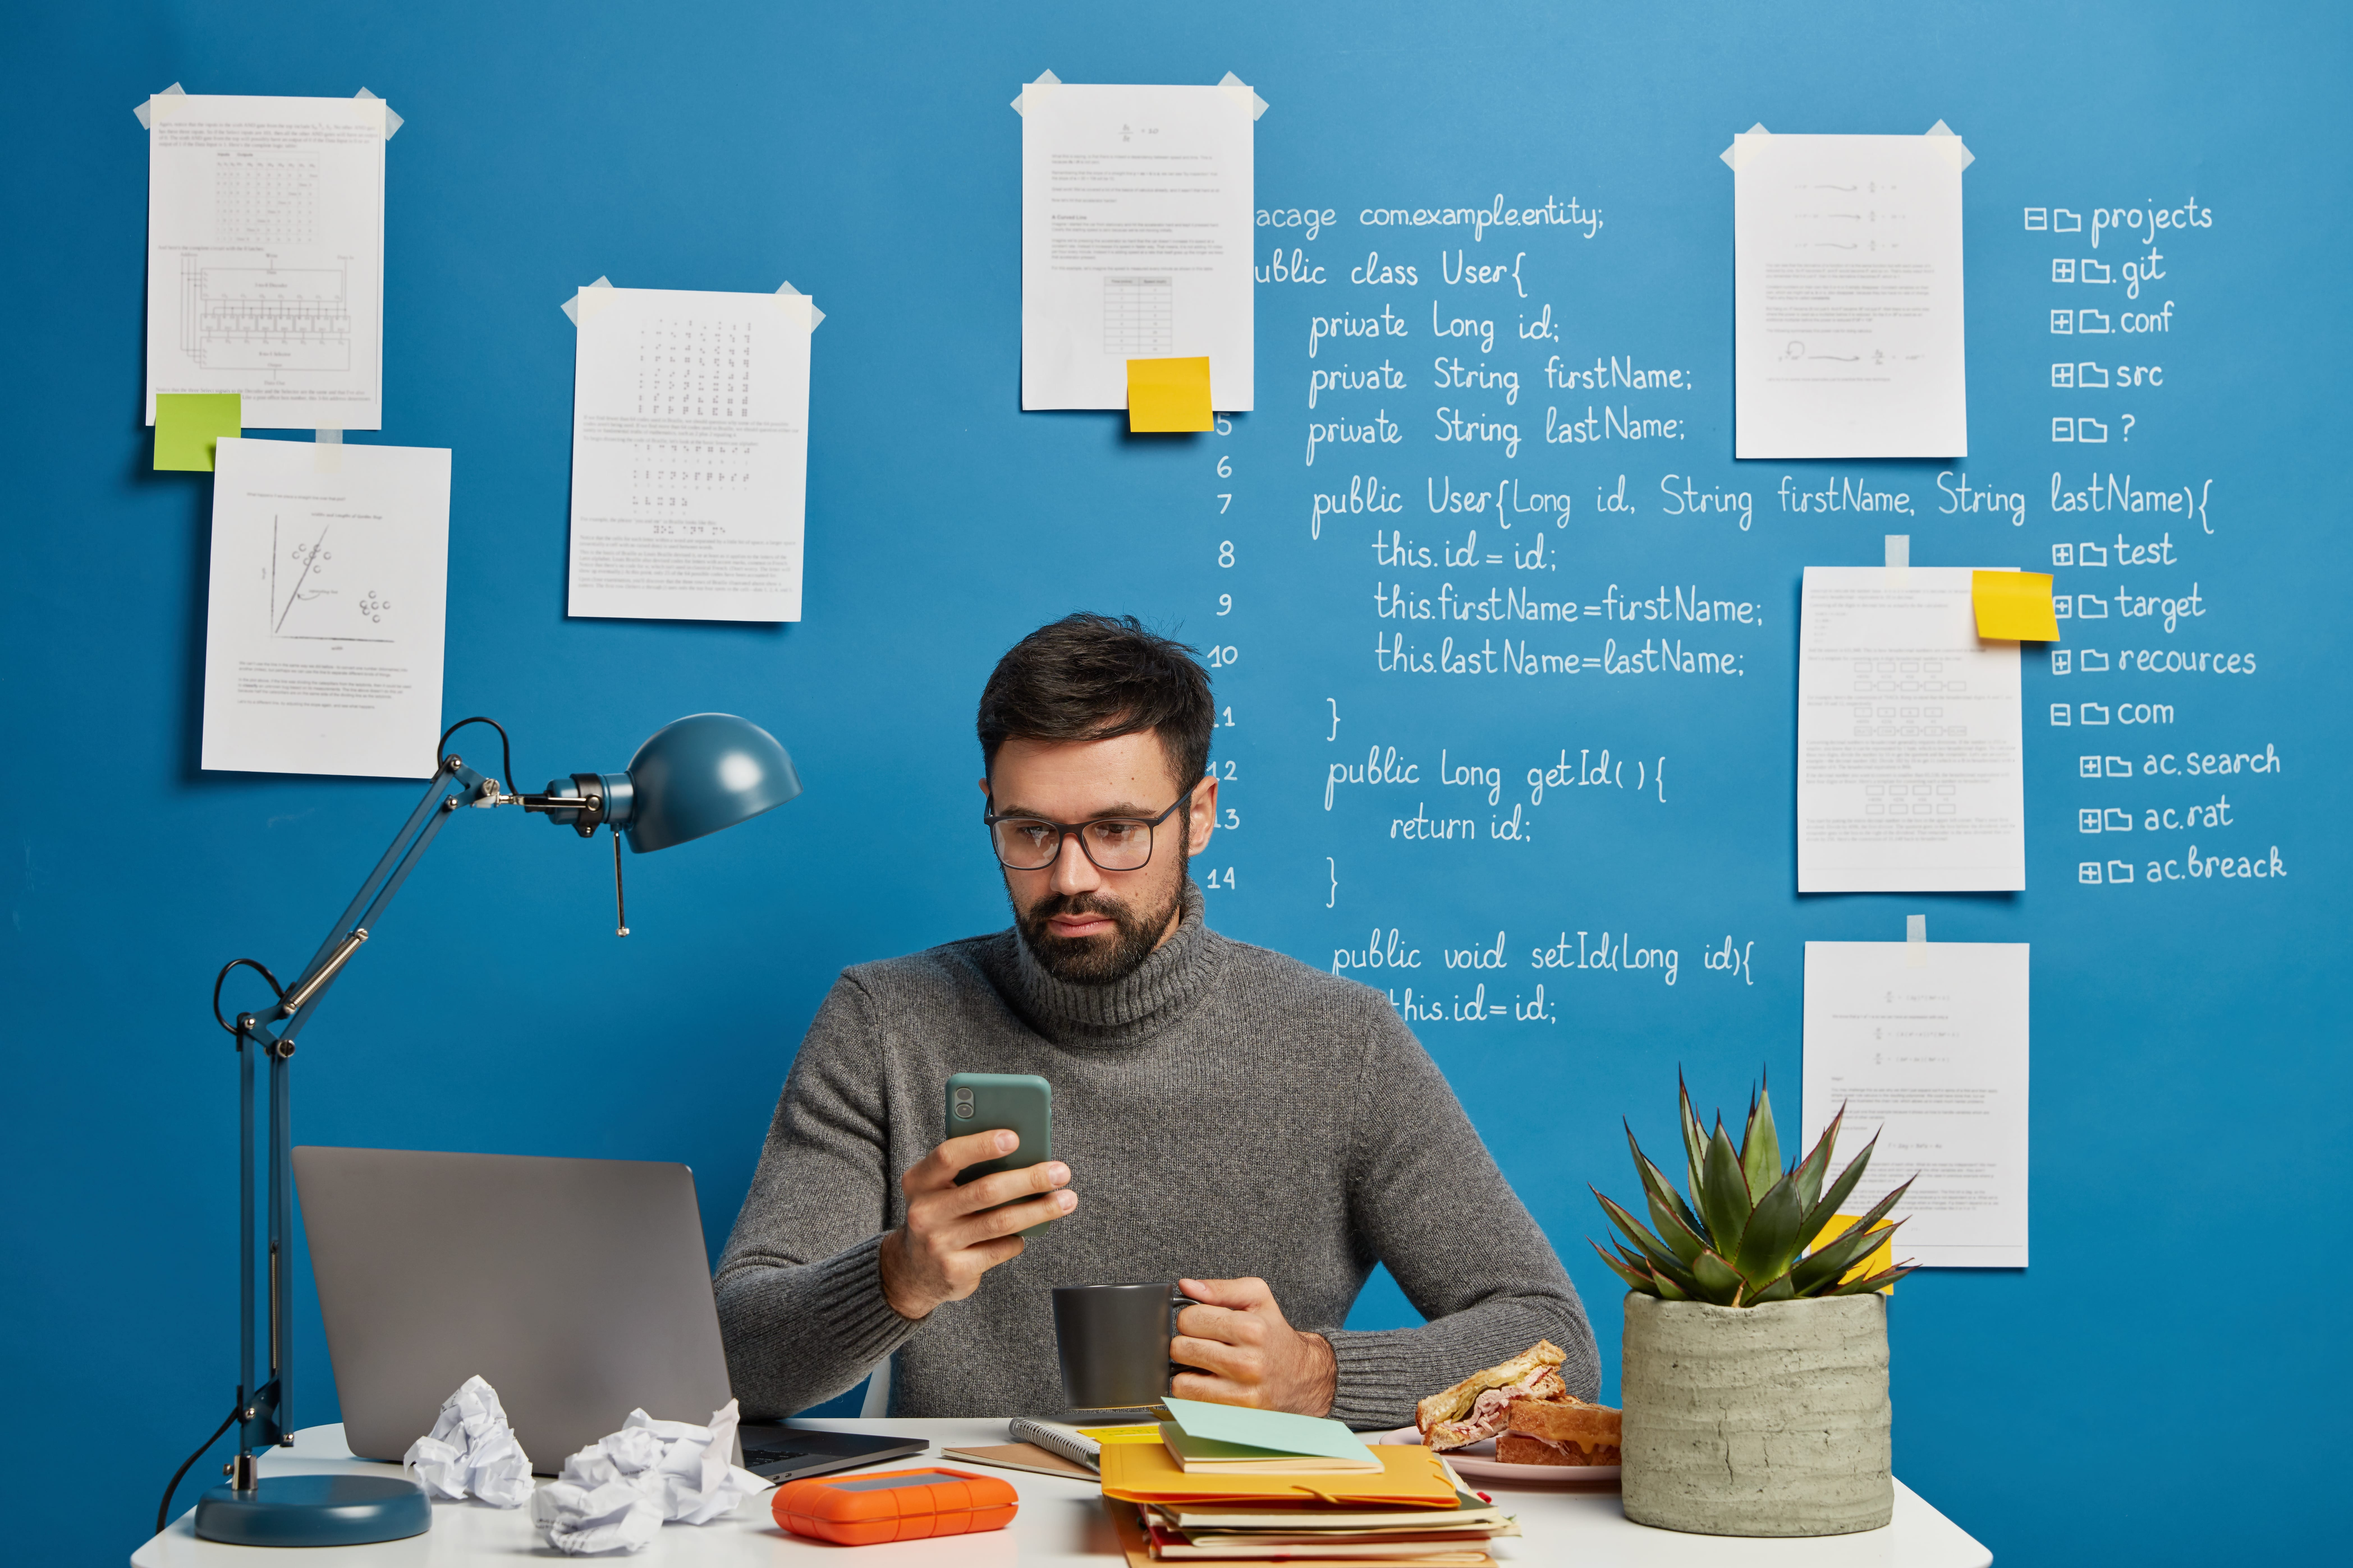 IT professional works on startup project, updates software and database on mobile phone, drinks hot beverage, sits at desktop against blue wall with written information. Computer hardware engineer